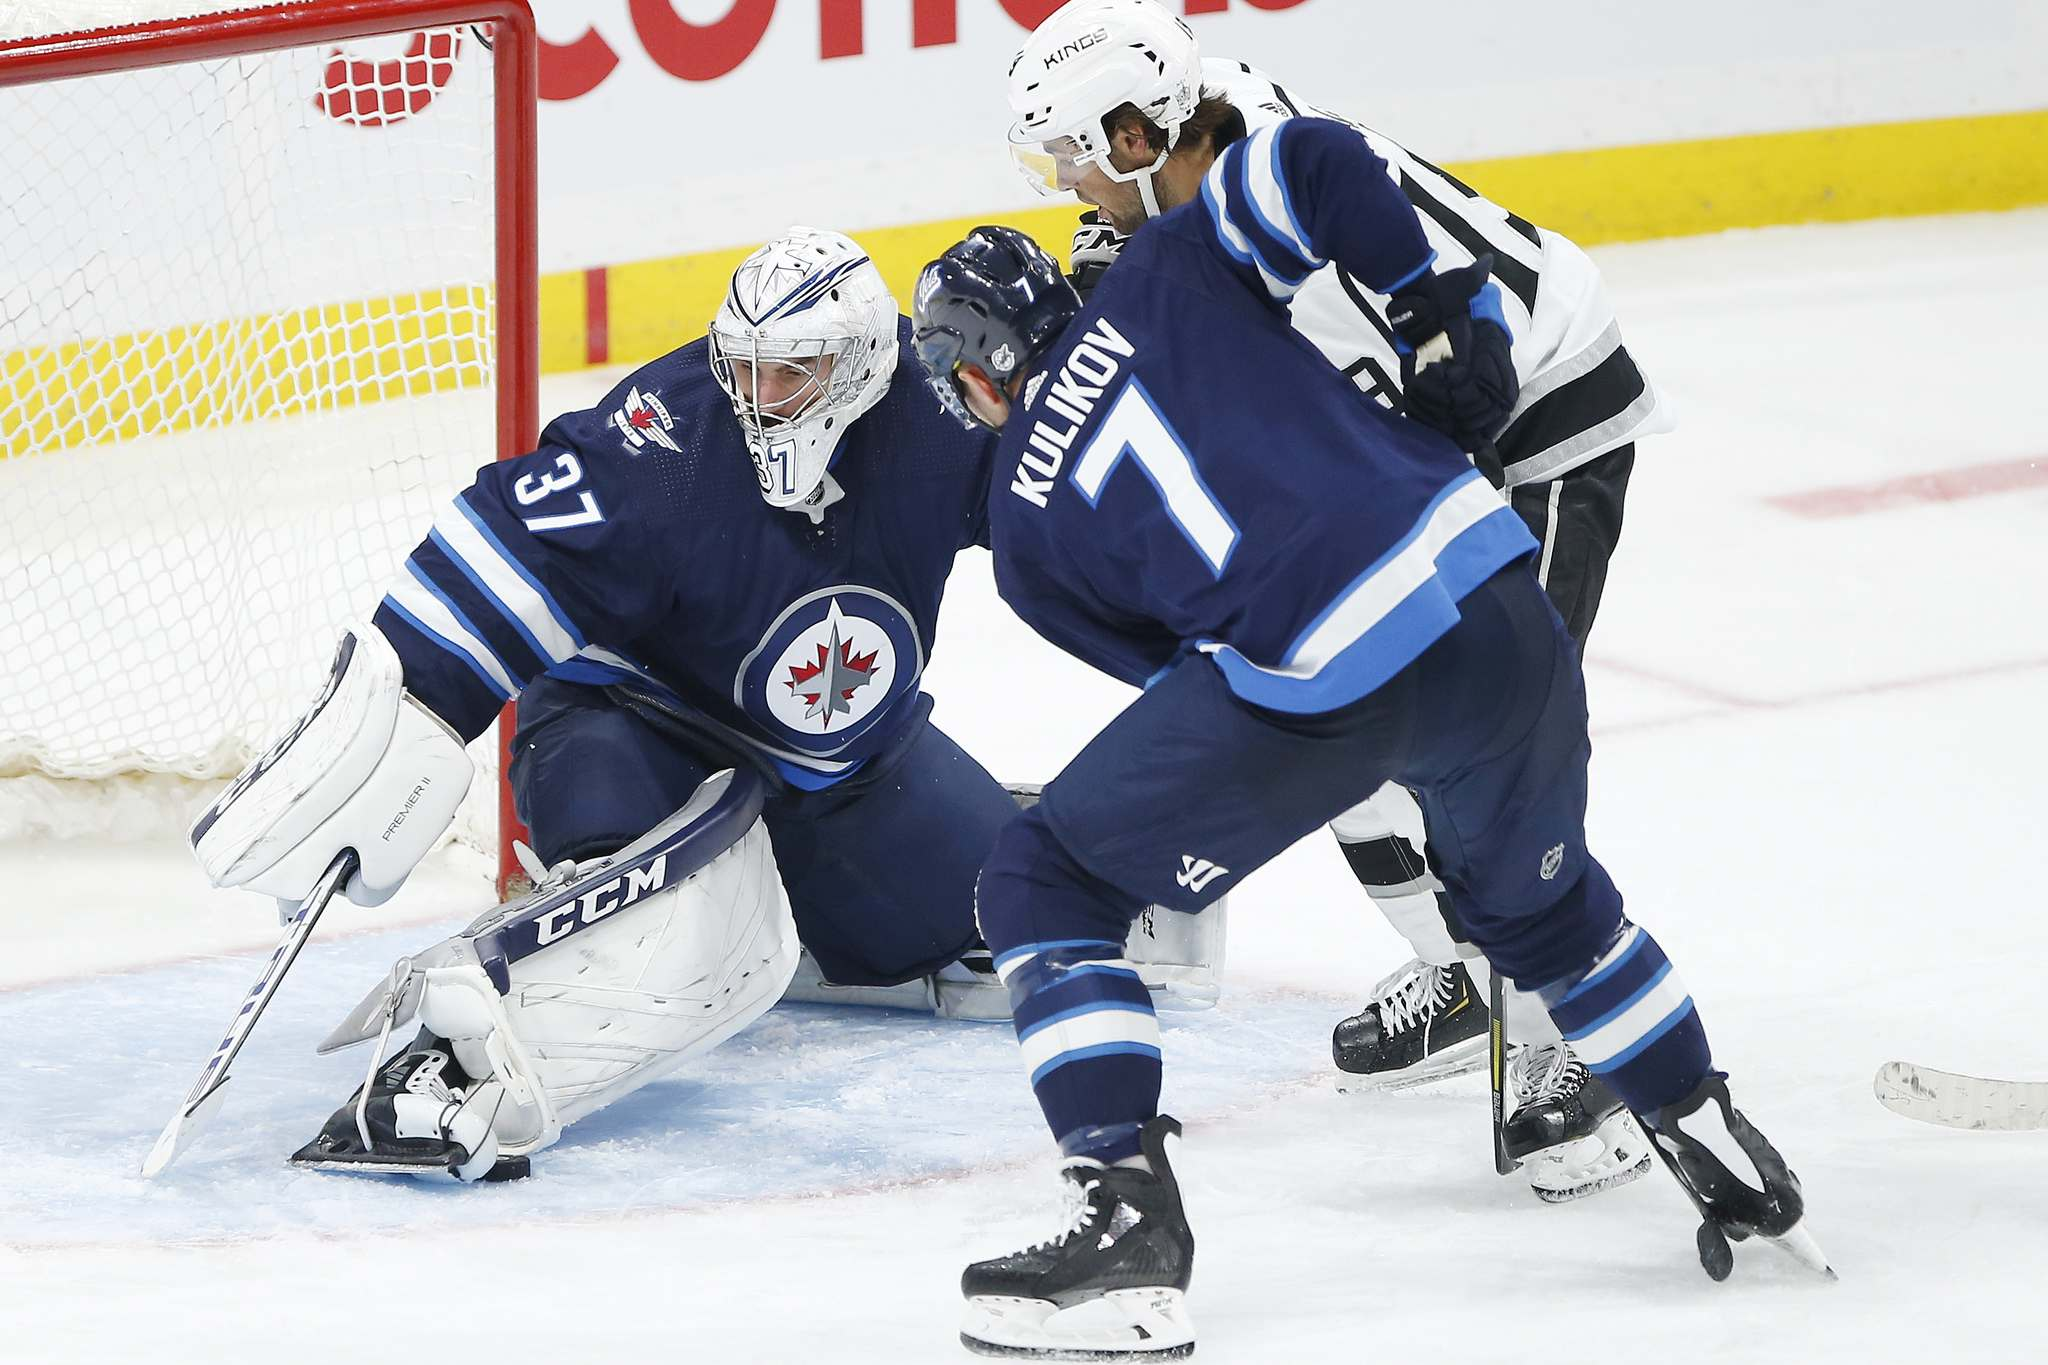 Last season, Connor Hellebuyck faced more difficult shots more often, and the easy shots that boost save percentage went down. (John Woods / Winnipeg Free Press files)